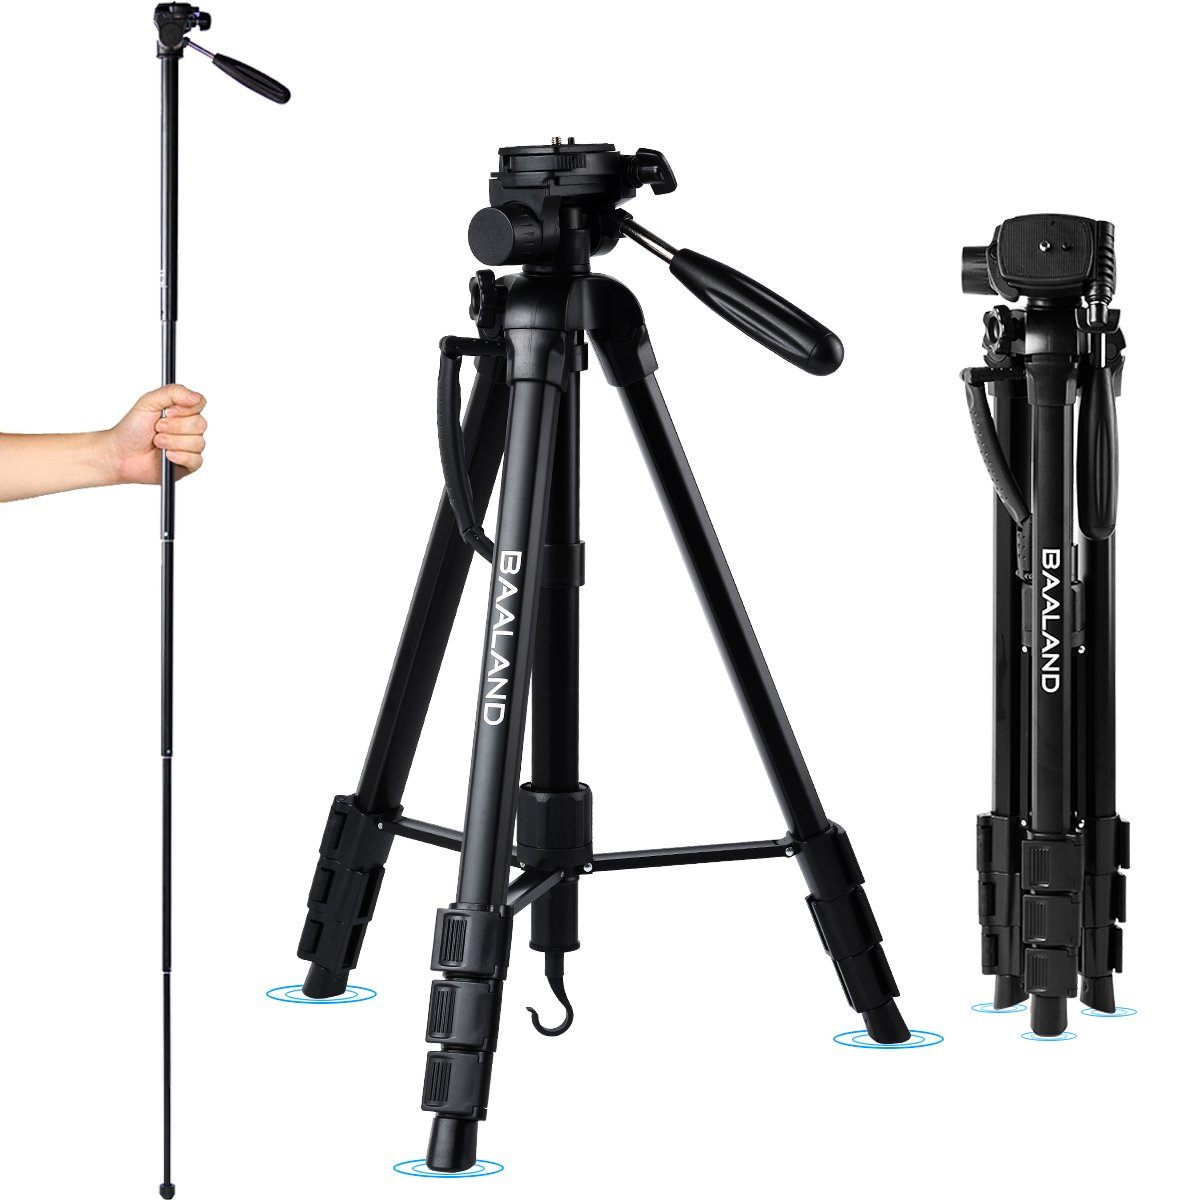 BAALAND Camera Tripod 20-70 Inch Lightweight Aluminum Compact Travel Tripod for Nikon Canon DSLR Video Camera 11LBS MAX Load with Bag by BAALAND